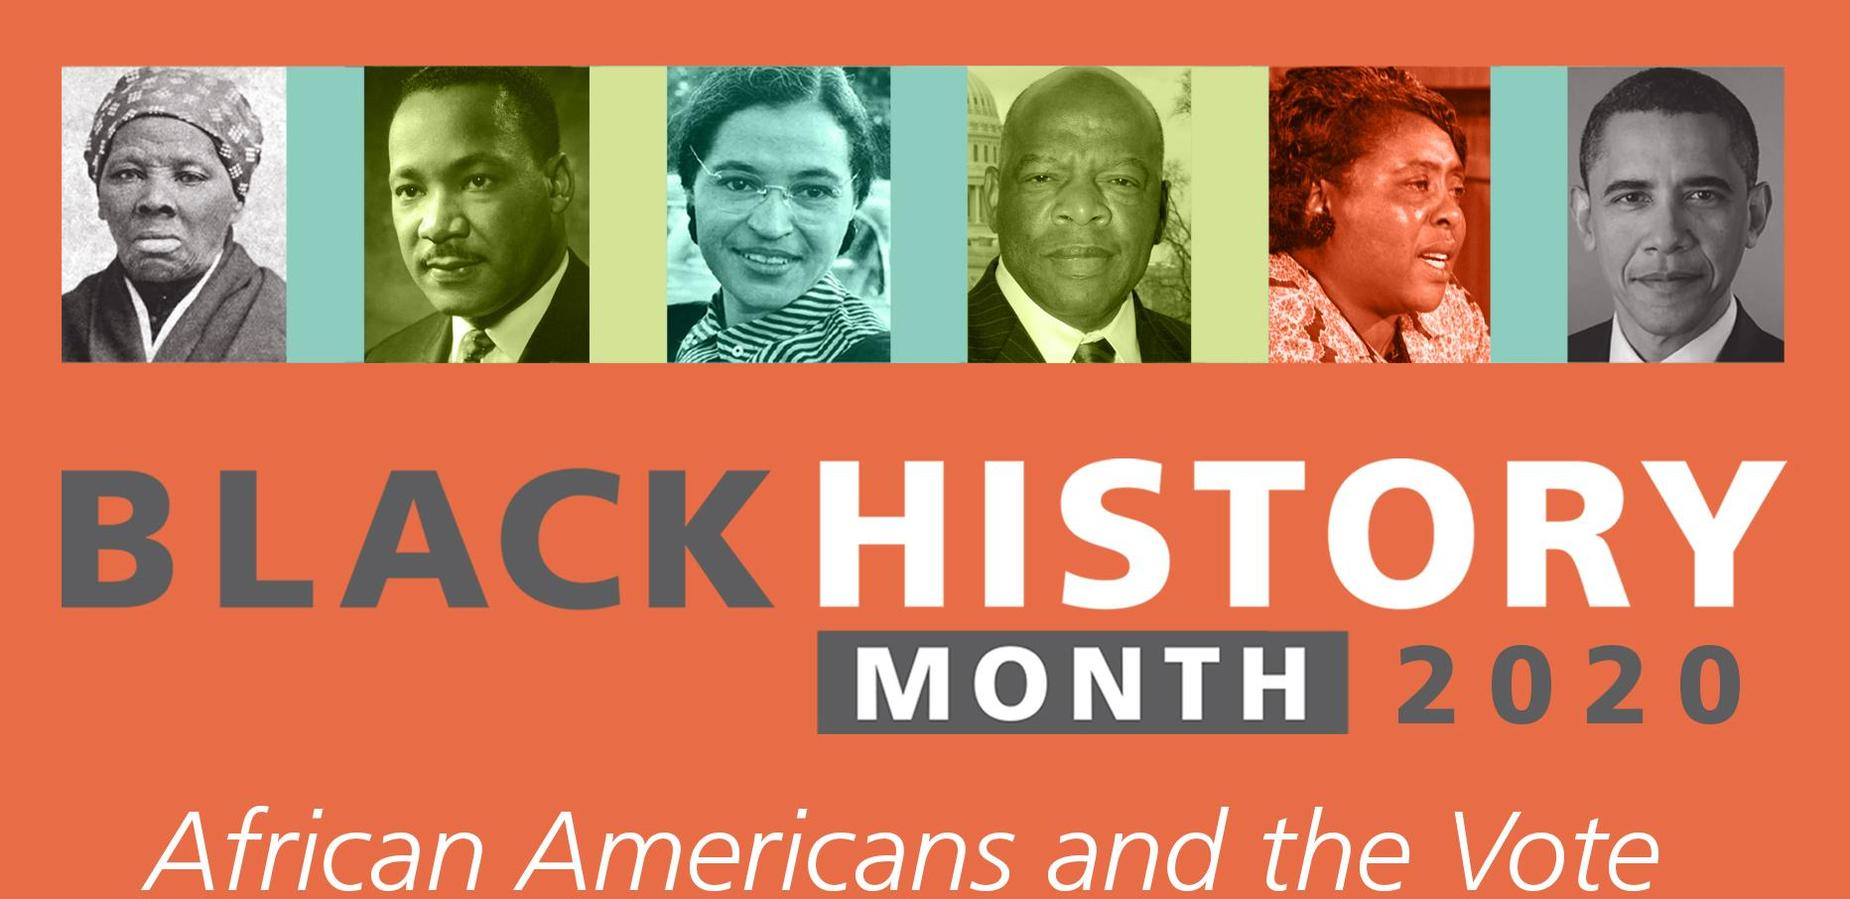 Black History month 2020 African Americans and the vote